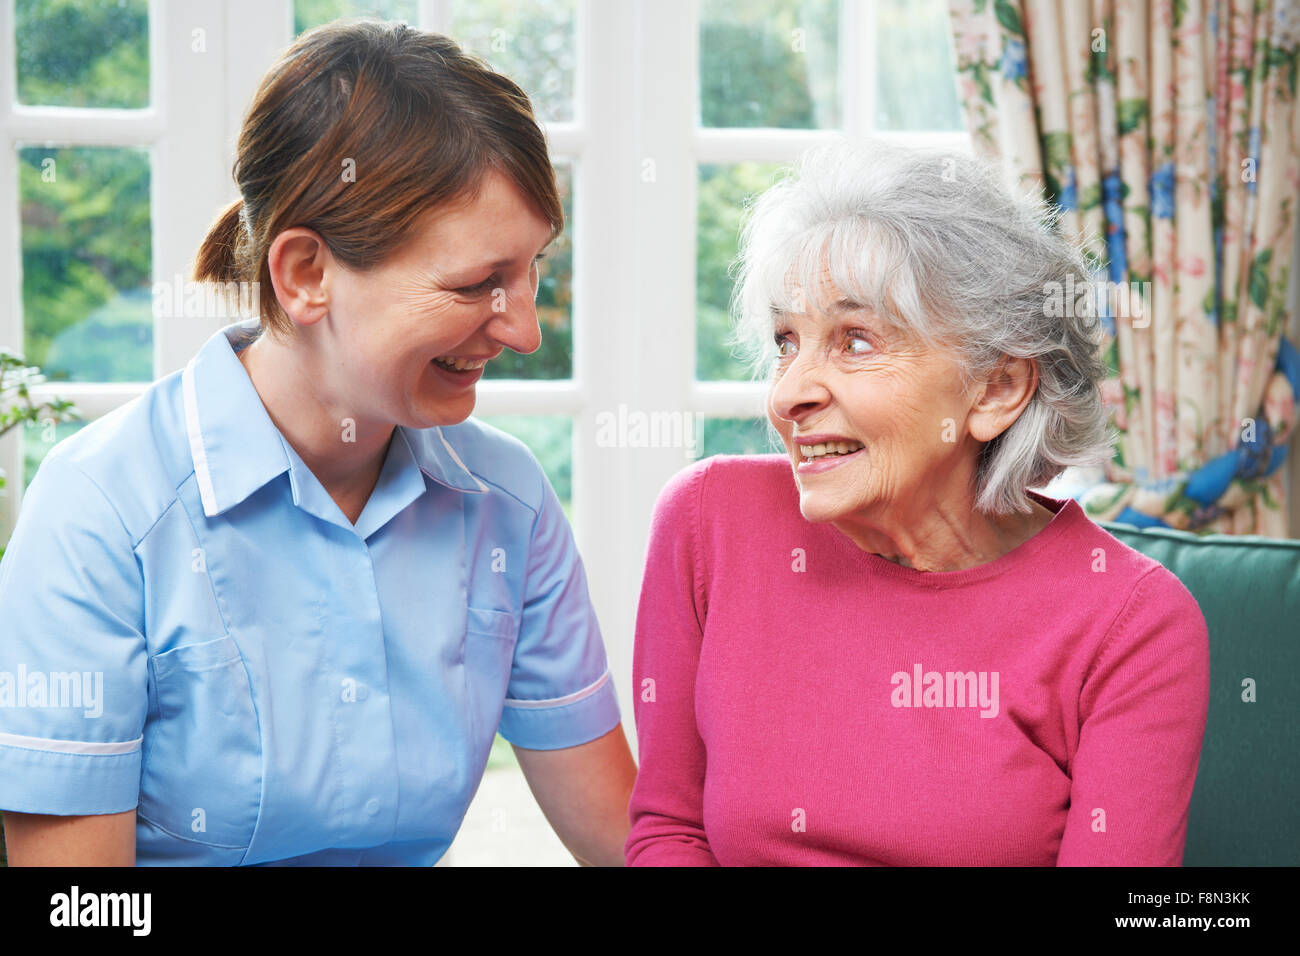 Senior Woman Chatting With Carer - Stock Image